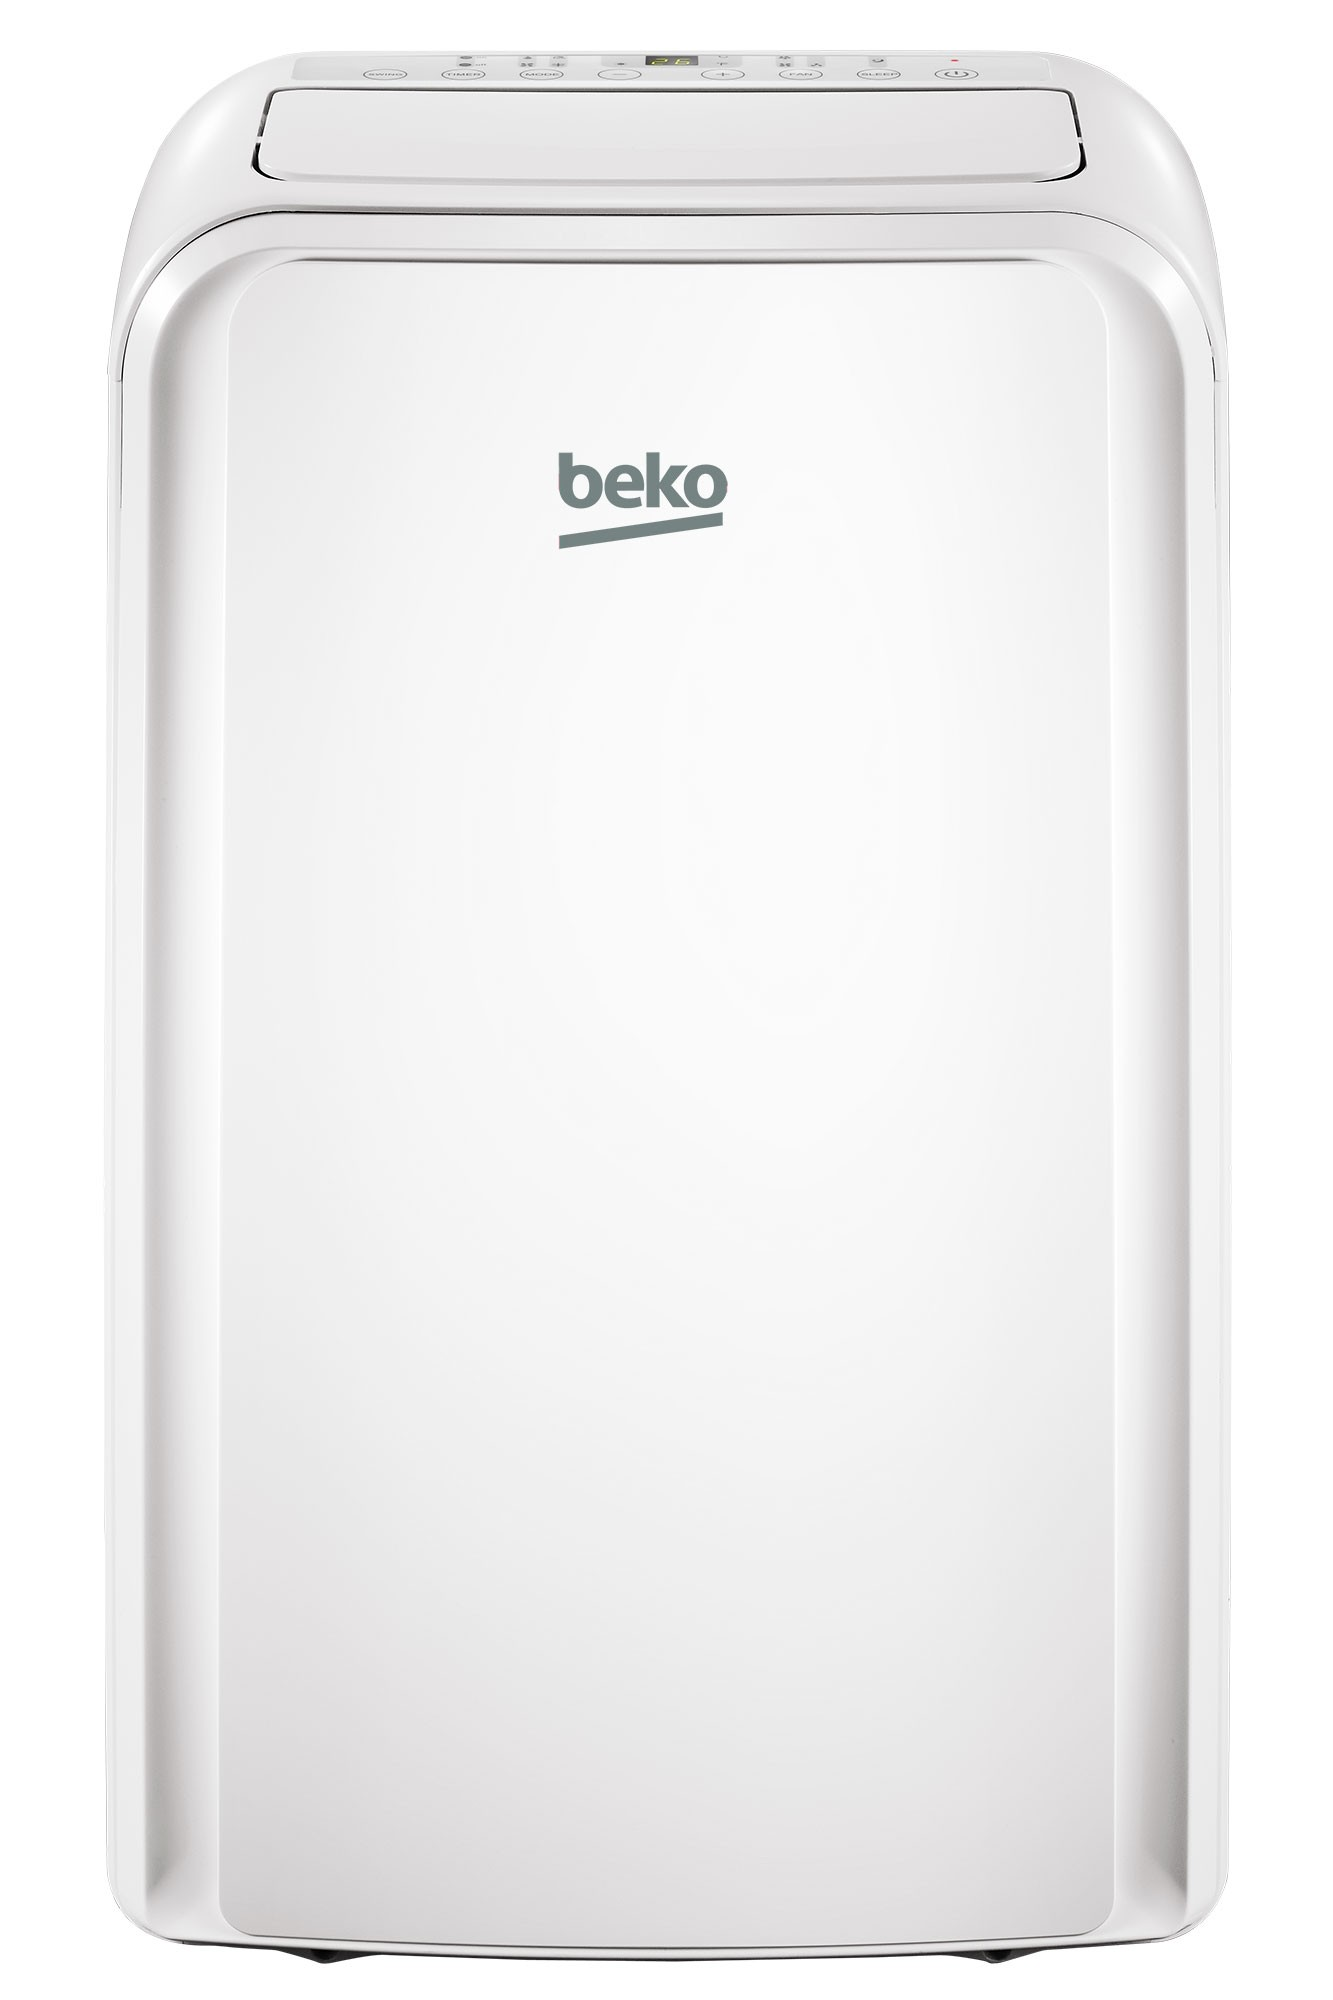 Aer conditionat portabil Beko BA112C